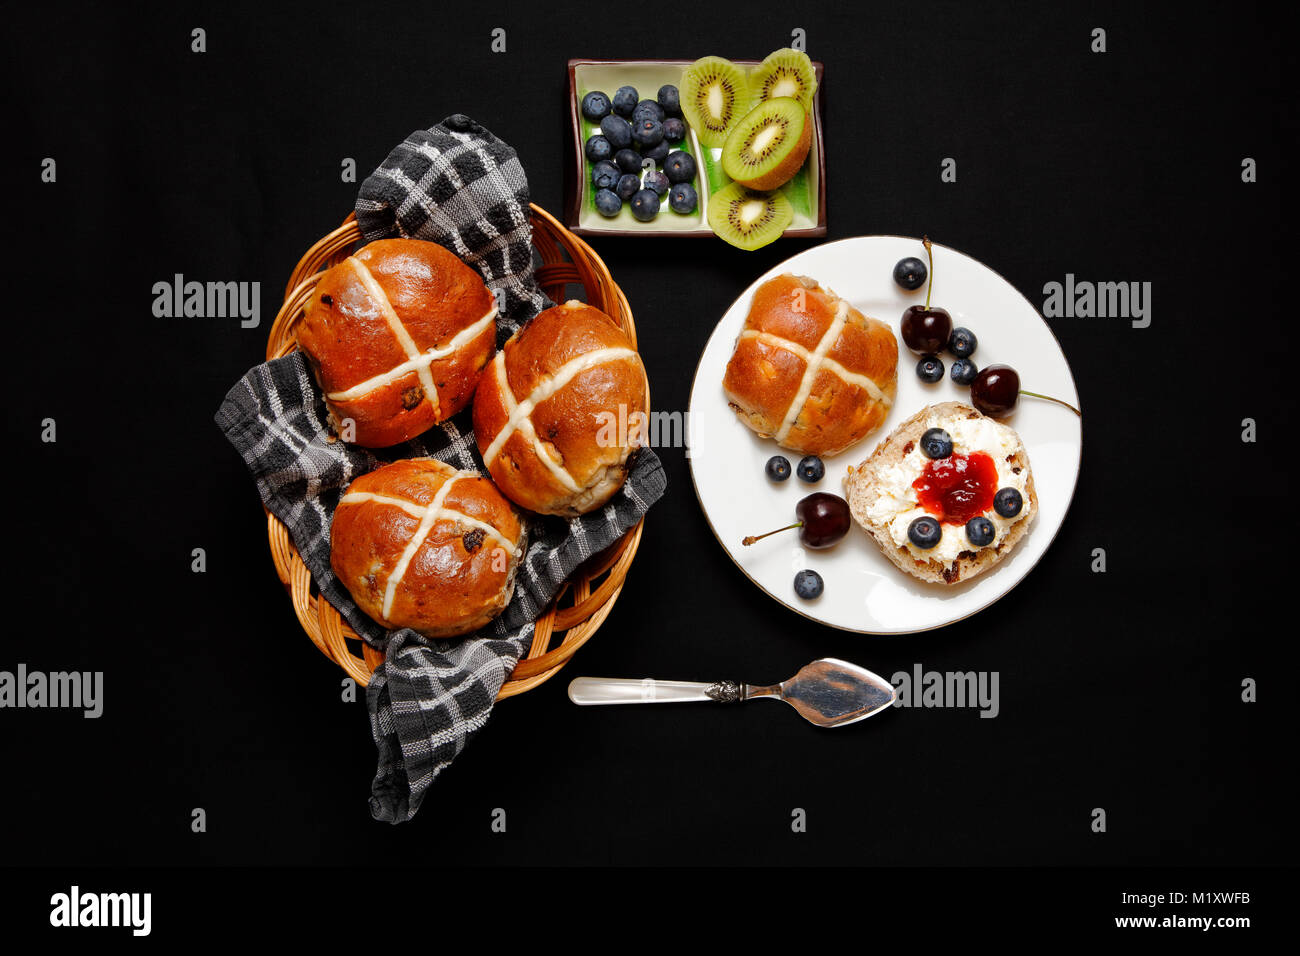 Easter Hot Cross Buns with jam, clotted cream, blueberries and kiwi - Stock Image